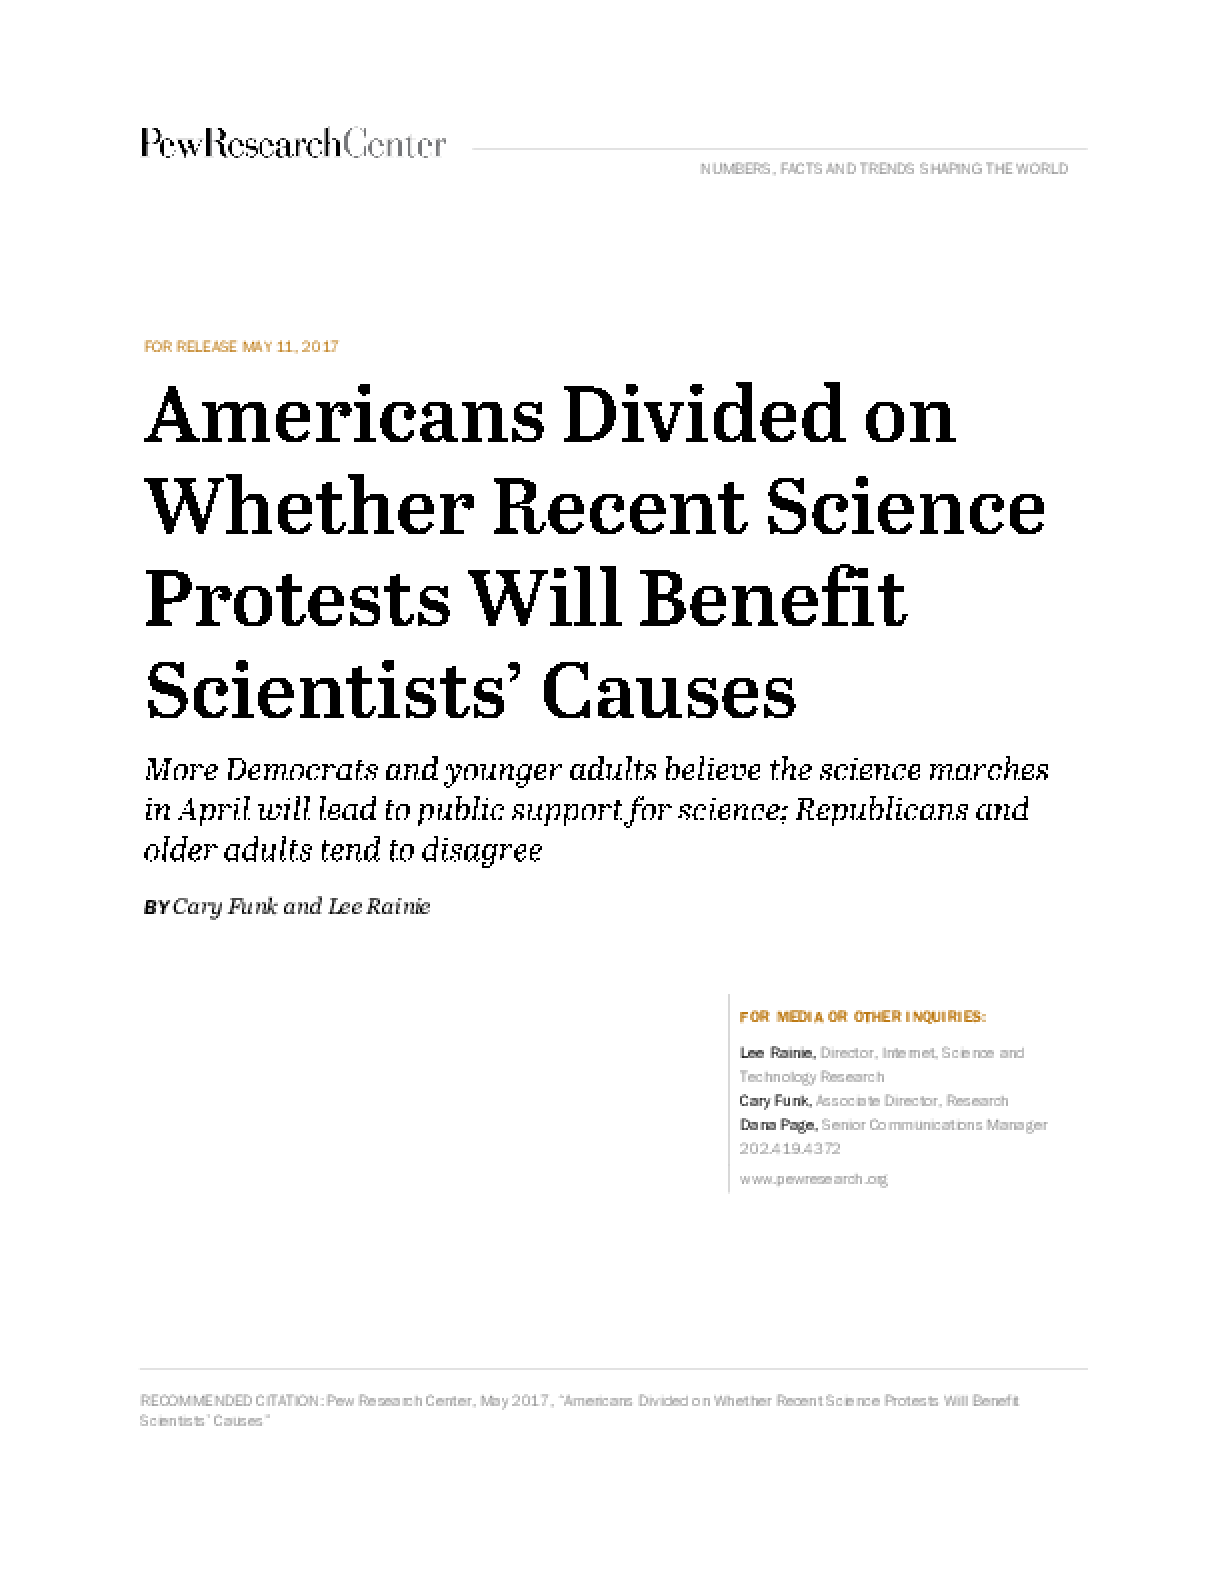 Americans Divided on Whether Recent Science Protests Will Benefit Scientists' Causes